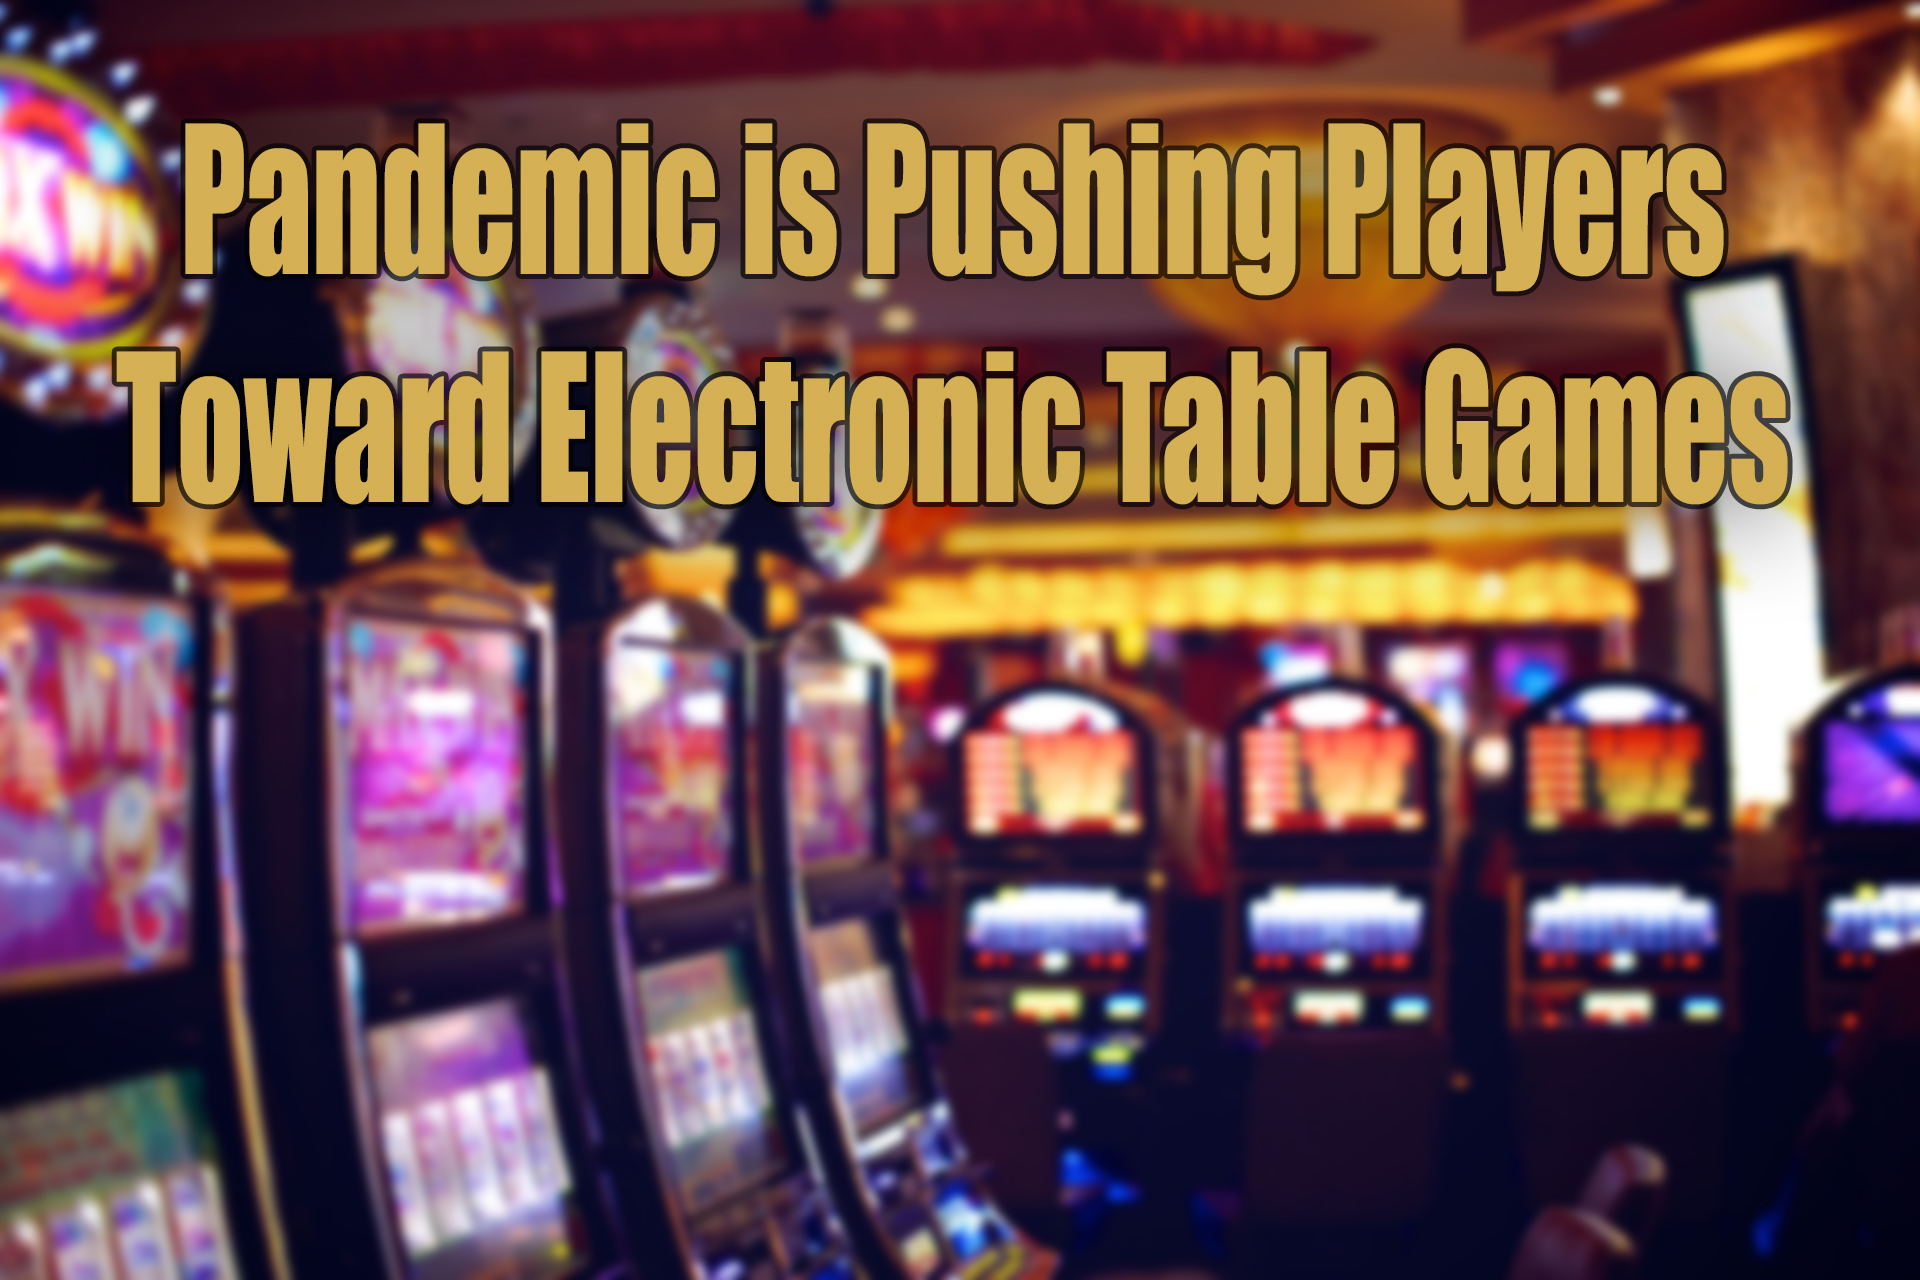 Electronic Table Game.jpg